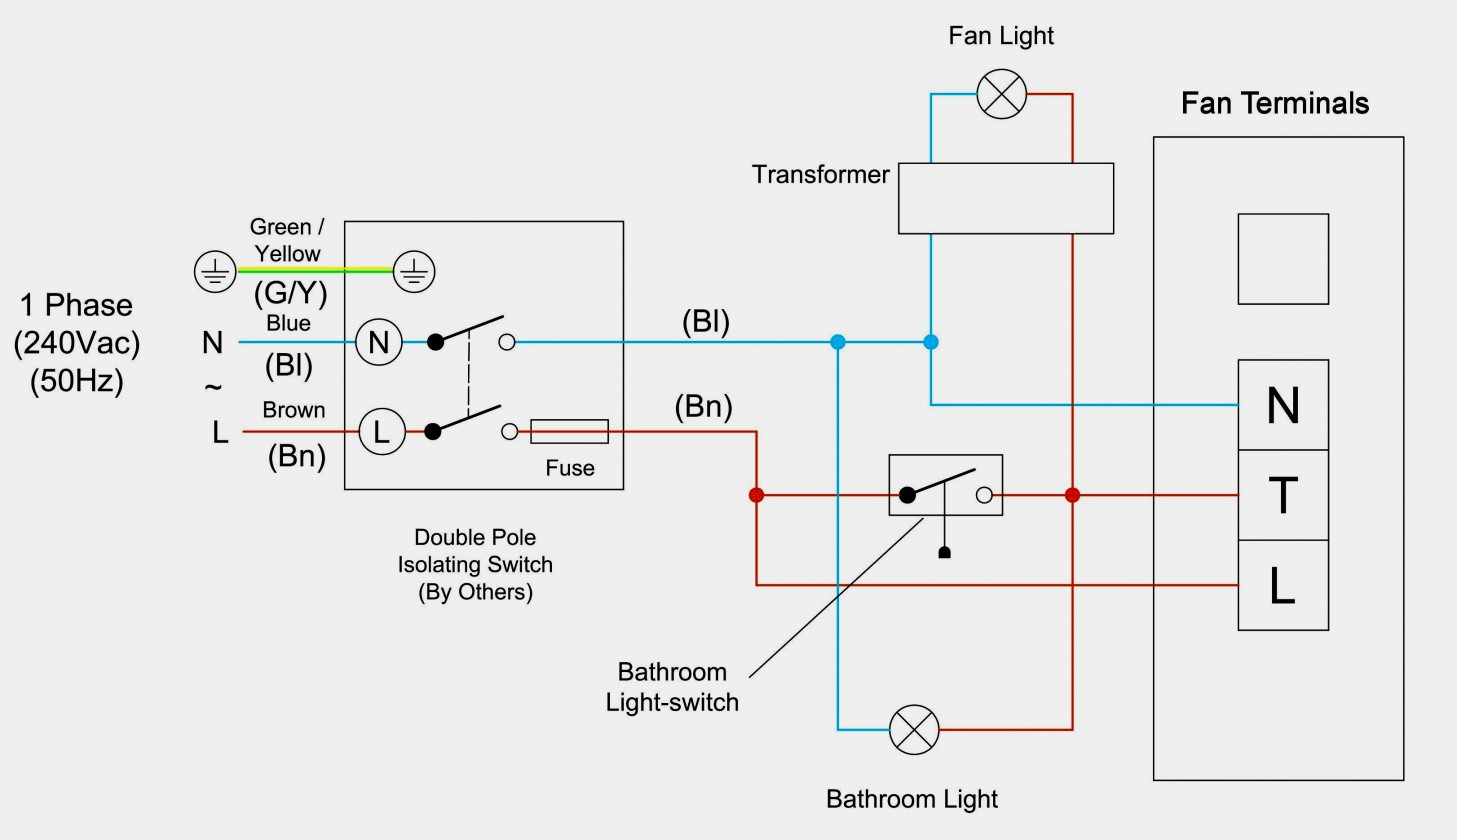 Bathroom Fan Isolator Switch Wiring Diagram - Schematics Wiring Diagram - Wiring A Bathroom Fan And Light Diagram